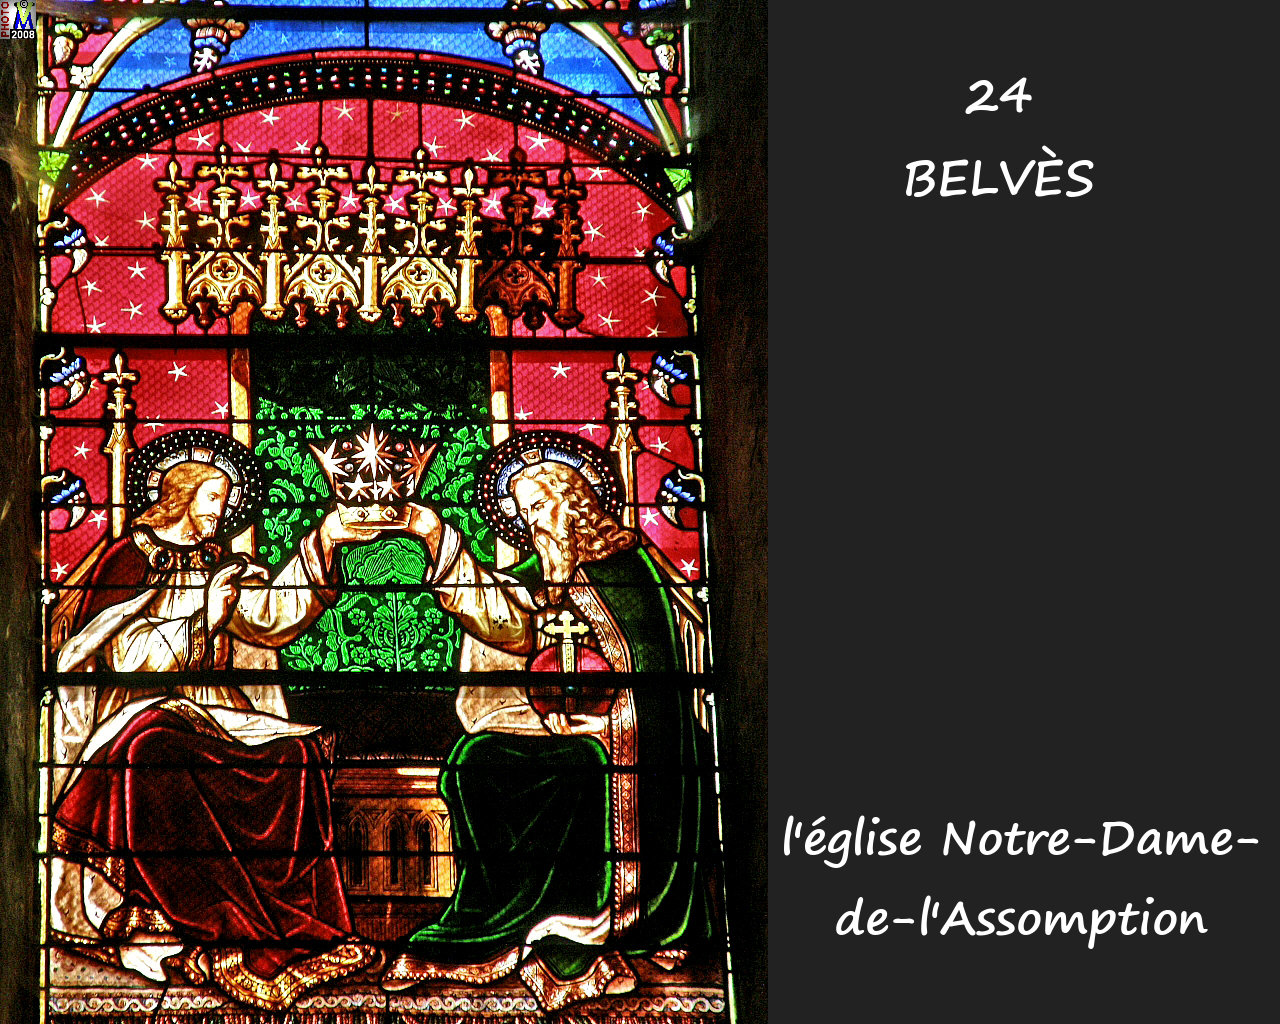 24BELVES_eglise_208.jpg